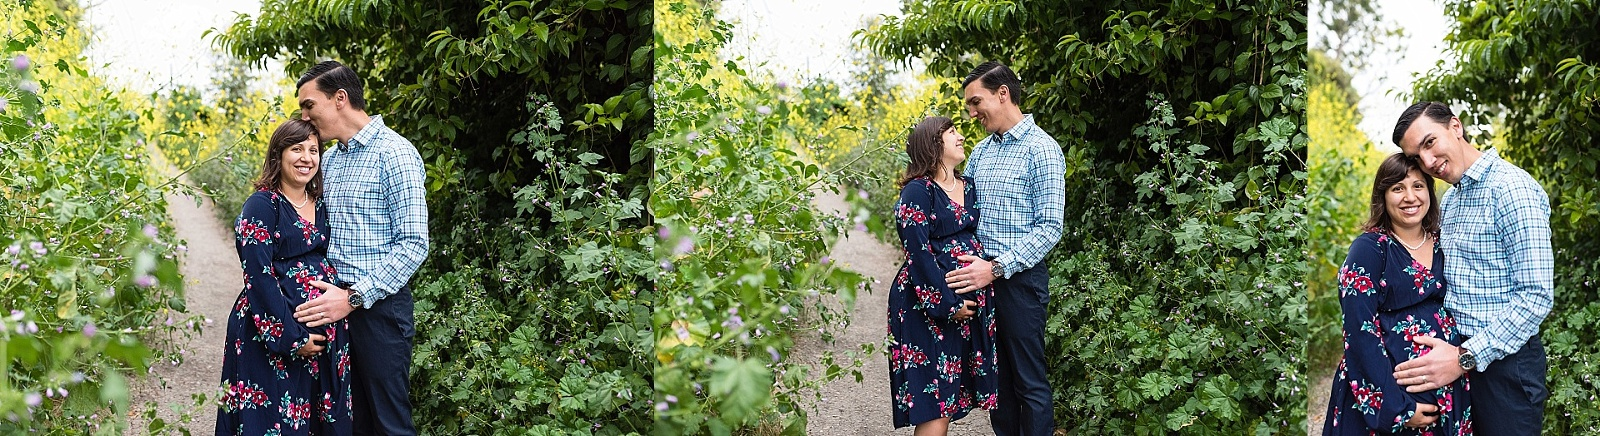 What to wear for your maternity photoshoot